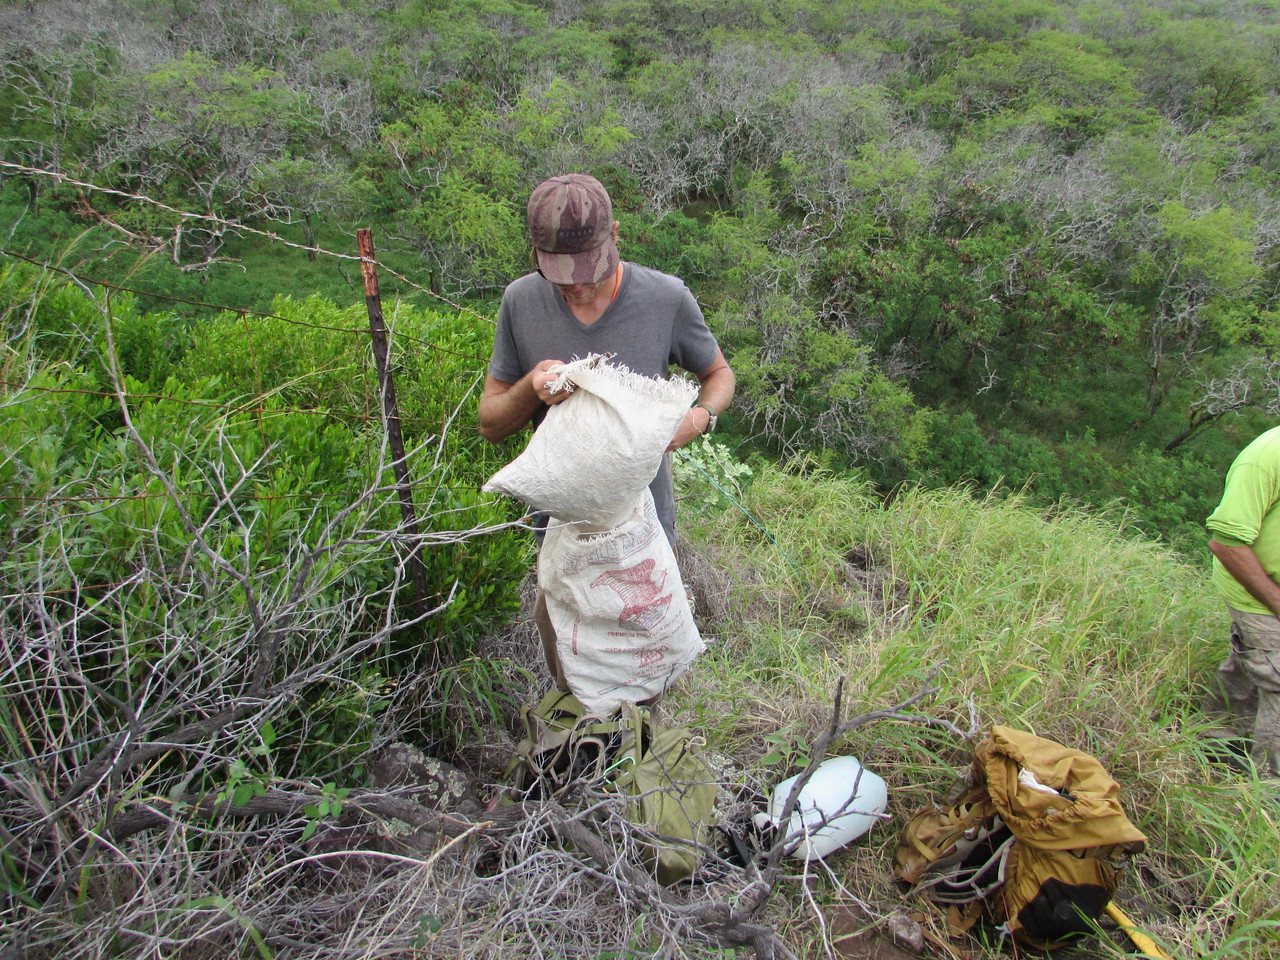 Hank provided rice bags to hold the seed pods we picked. They got dumped a fair distance downwind from the exclosure.